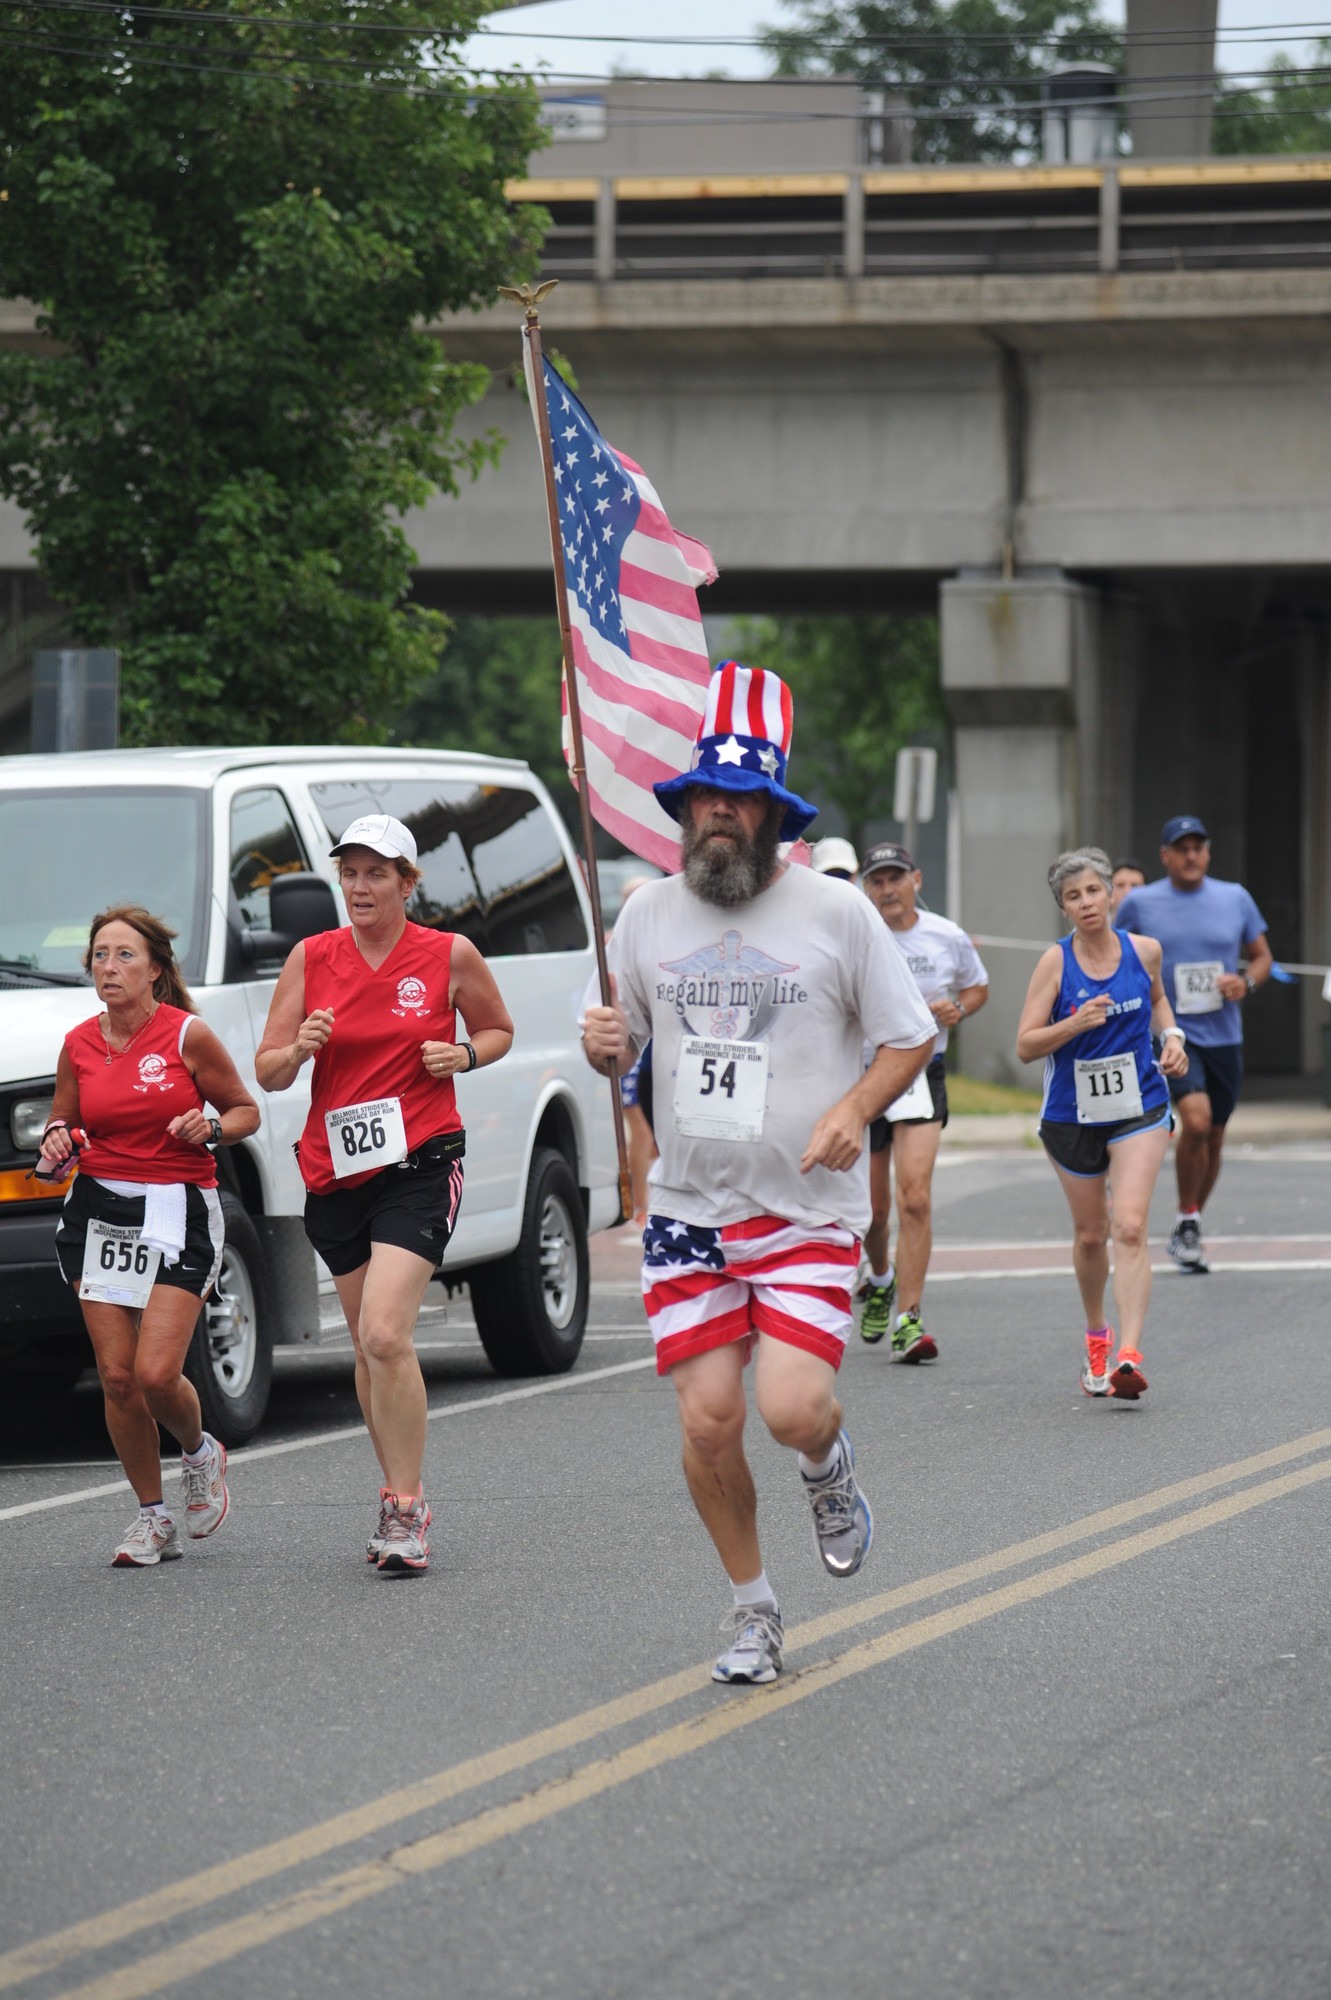 John Skidmore, of North Bellmore, raced through downtown Bellmore in patriotic fashion.